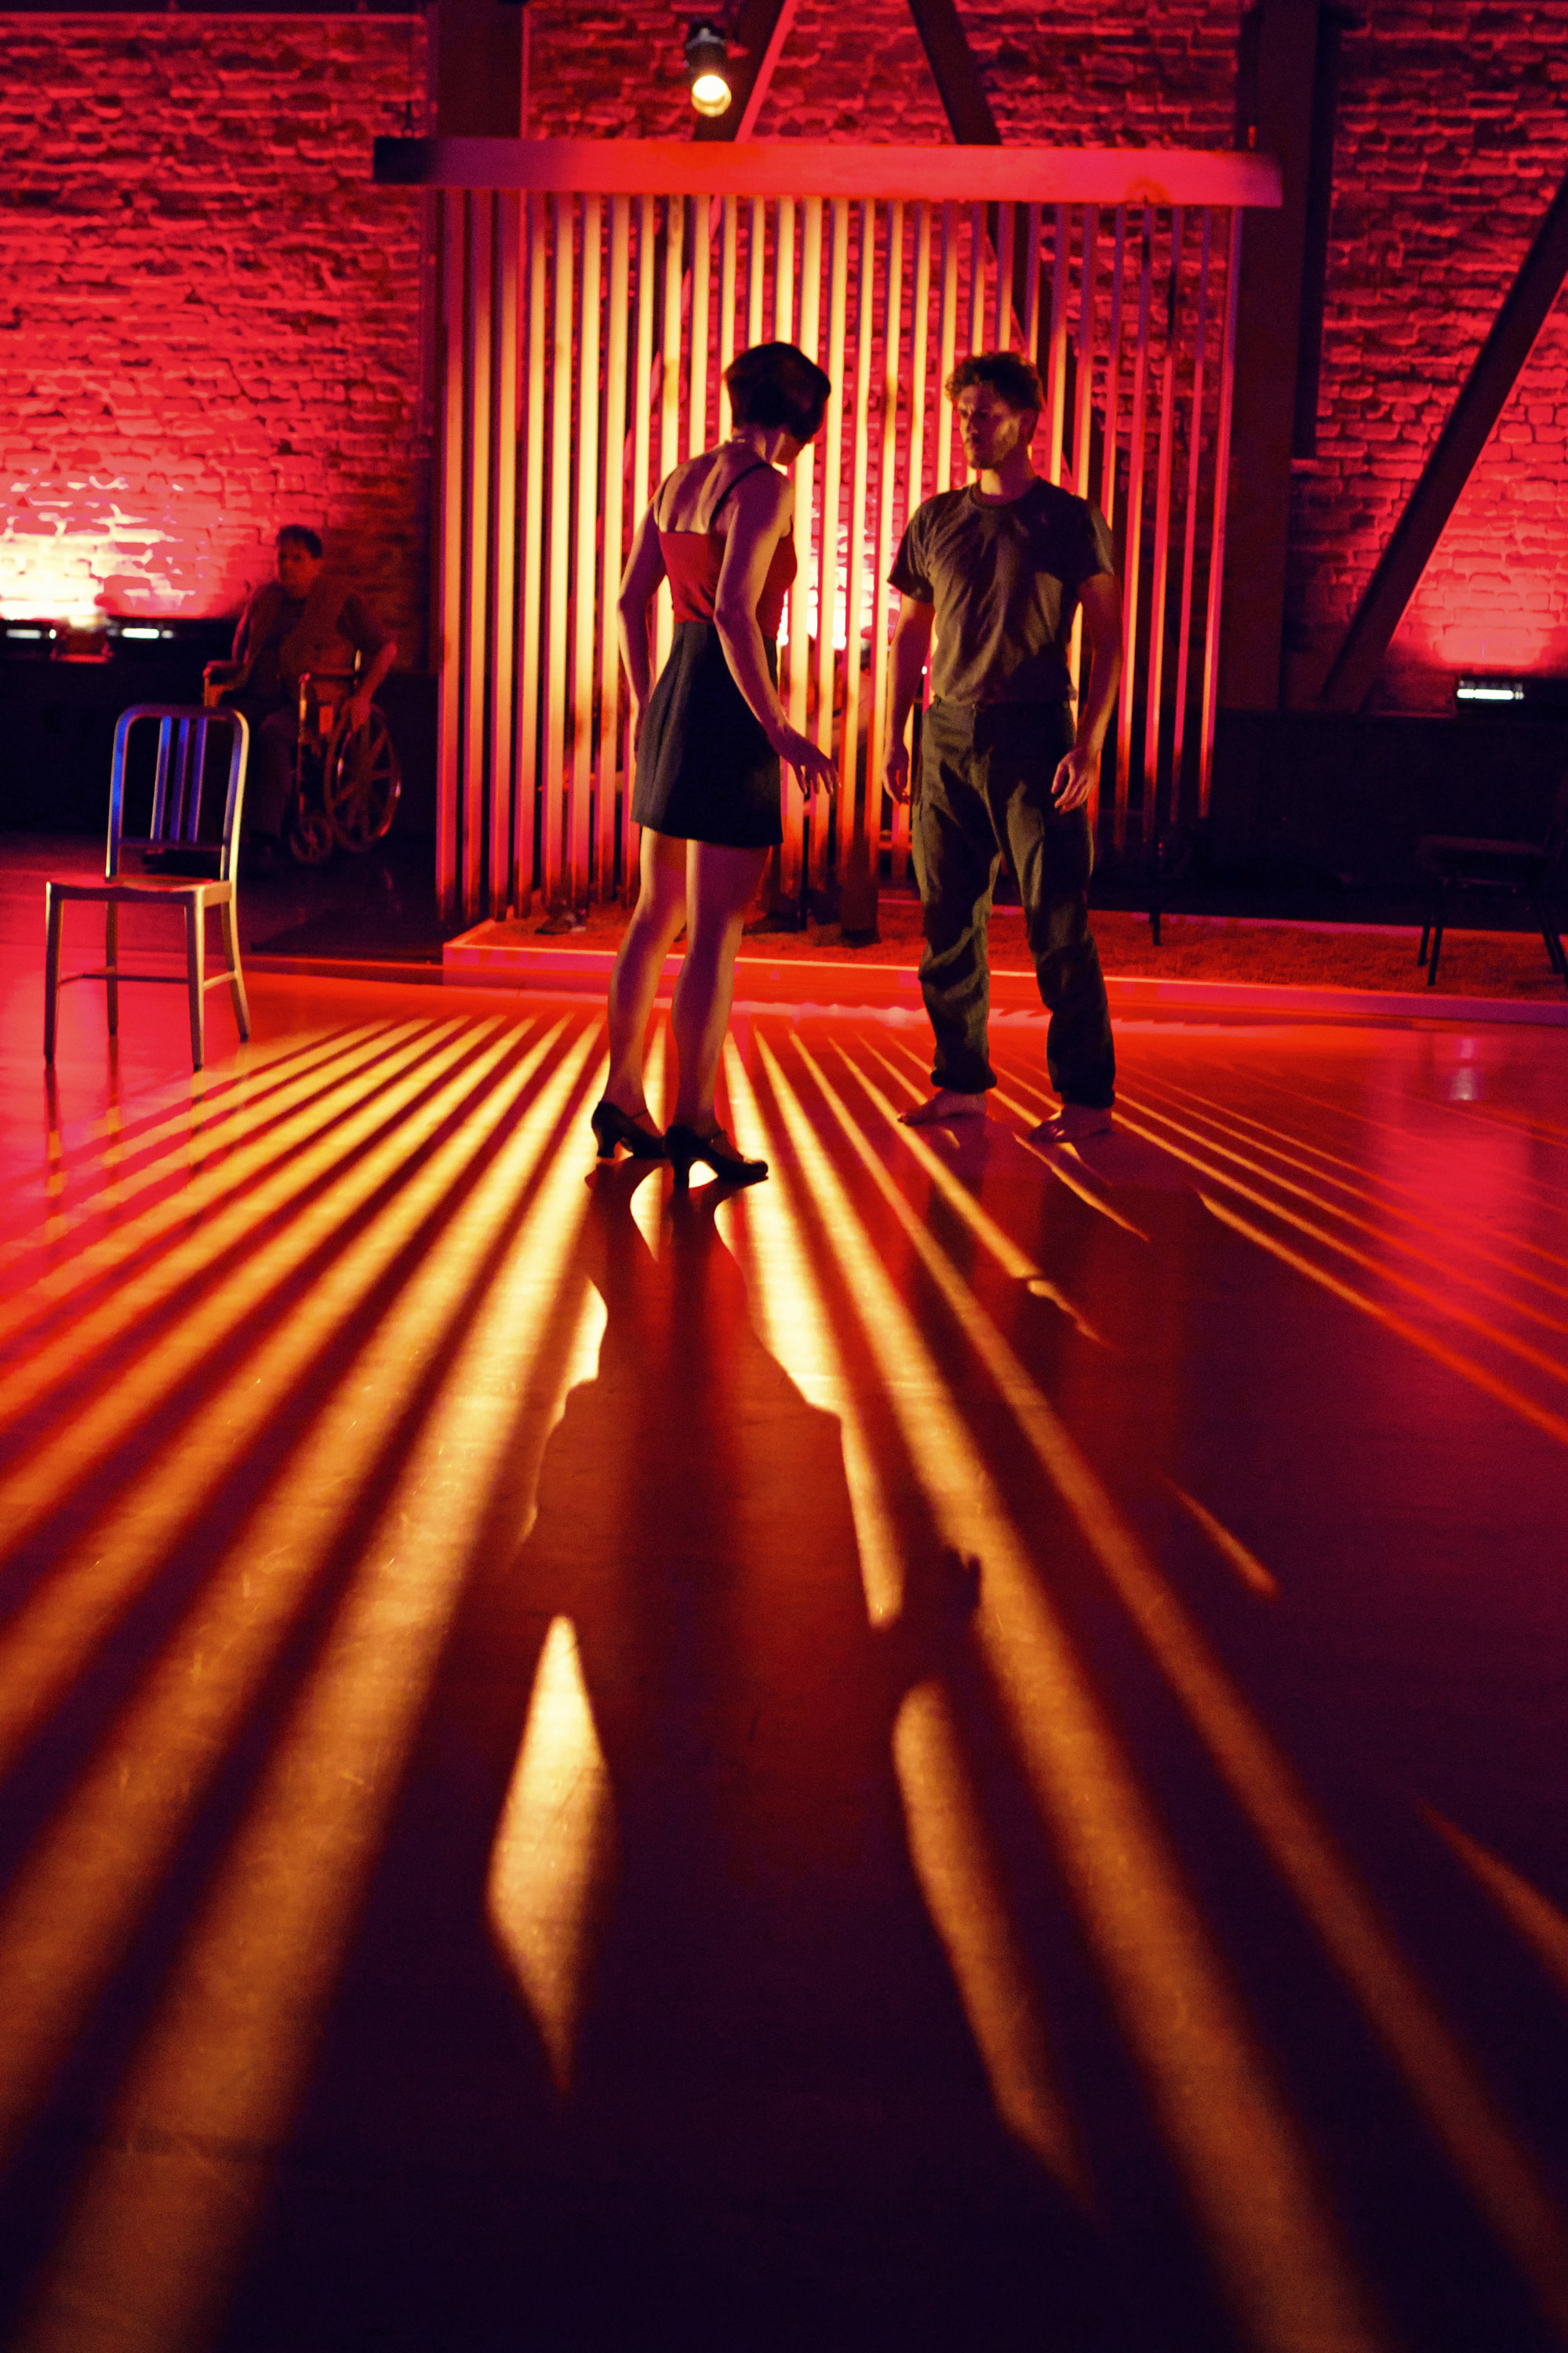 private-life-allen-willner-lighting-two-people-red.jpg